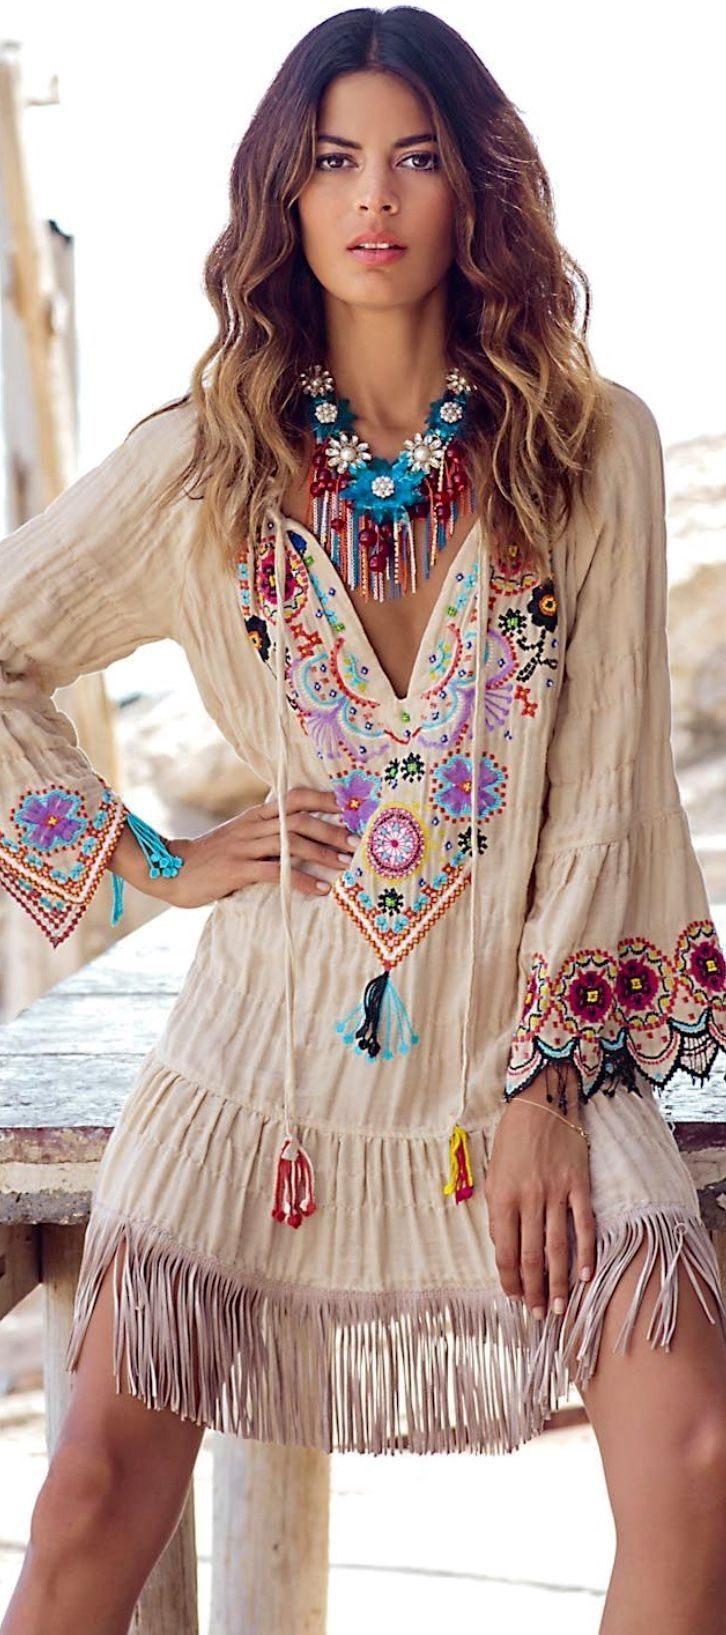 60 of the most popular spring boho outfit ideas on pinterest fringe dress fashion spring and Bohemian fashion style pinterest